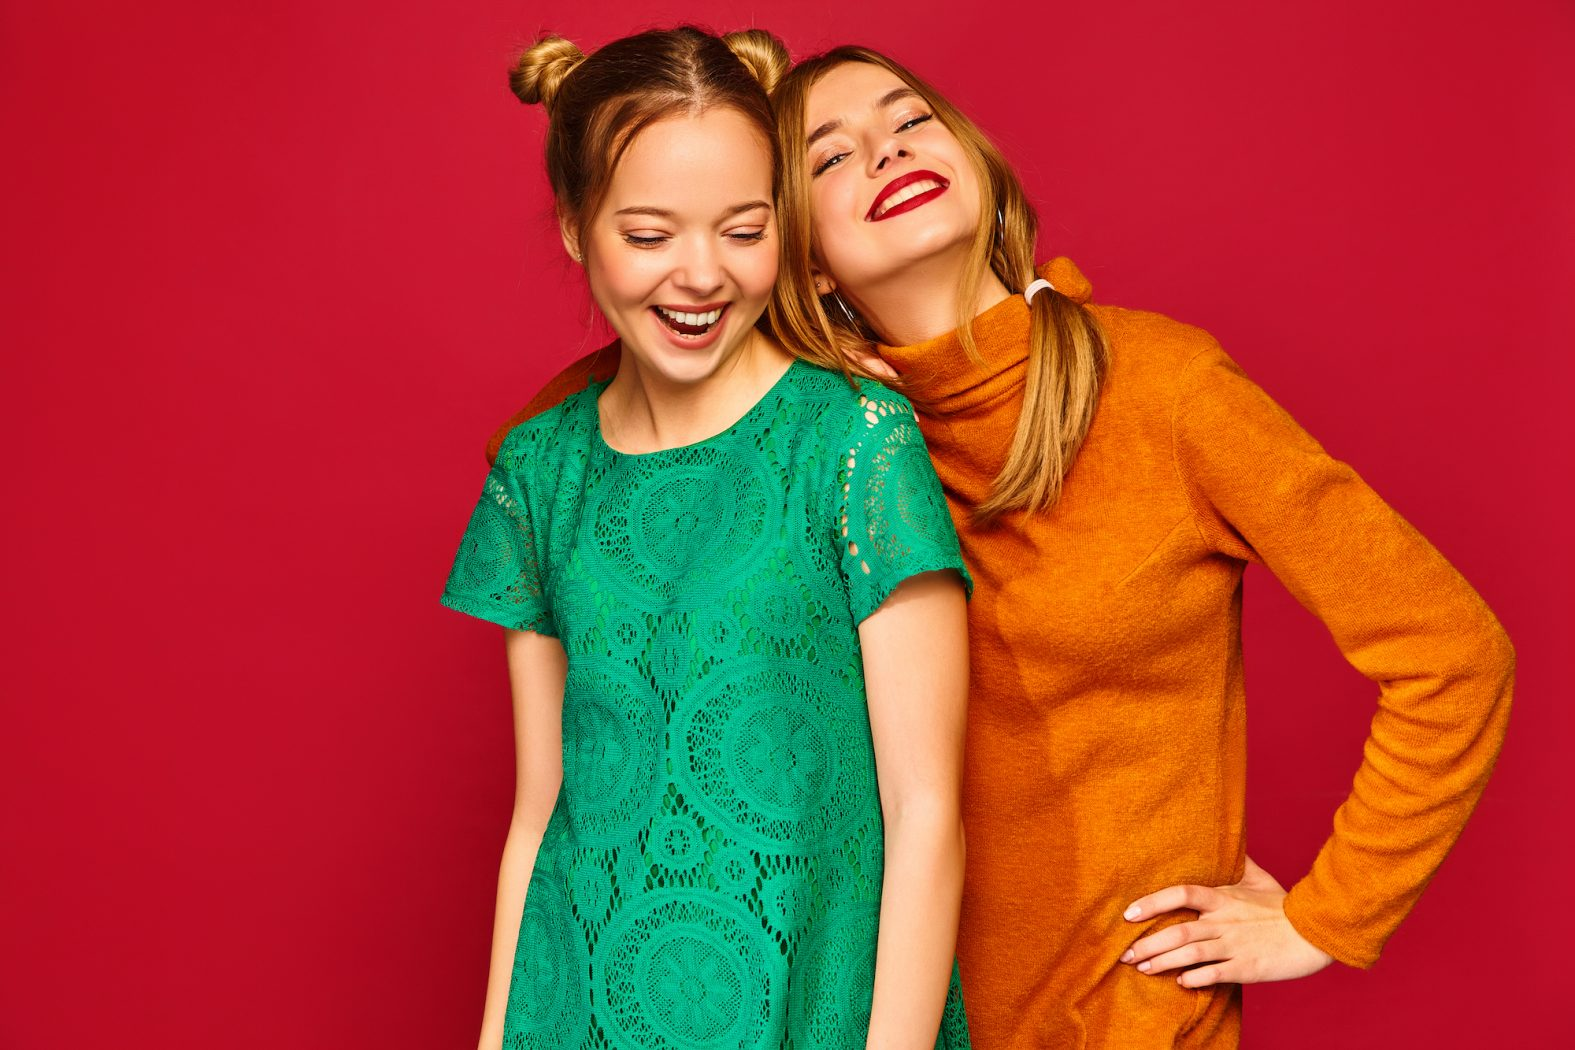 Two young beautiful blond smiling hipster girls posing in trendy summer clothes. Carefree women isolated on red background. Positive models going crazy and hugging